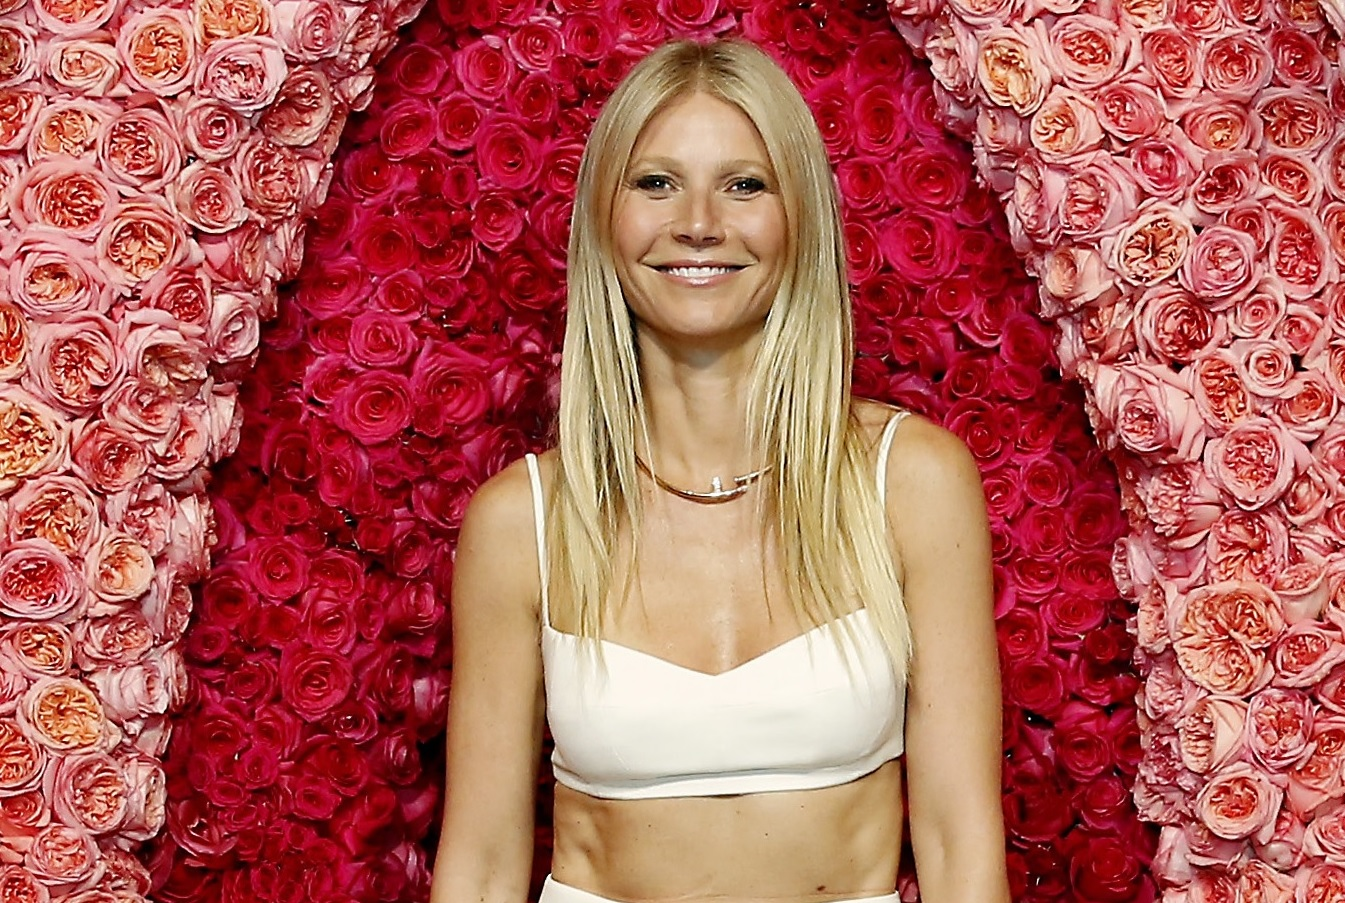 gwyneth paltrow birthday suit pic